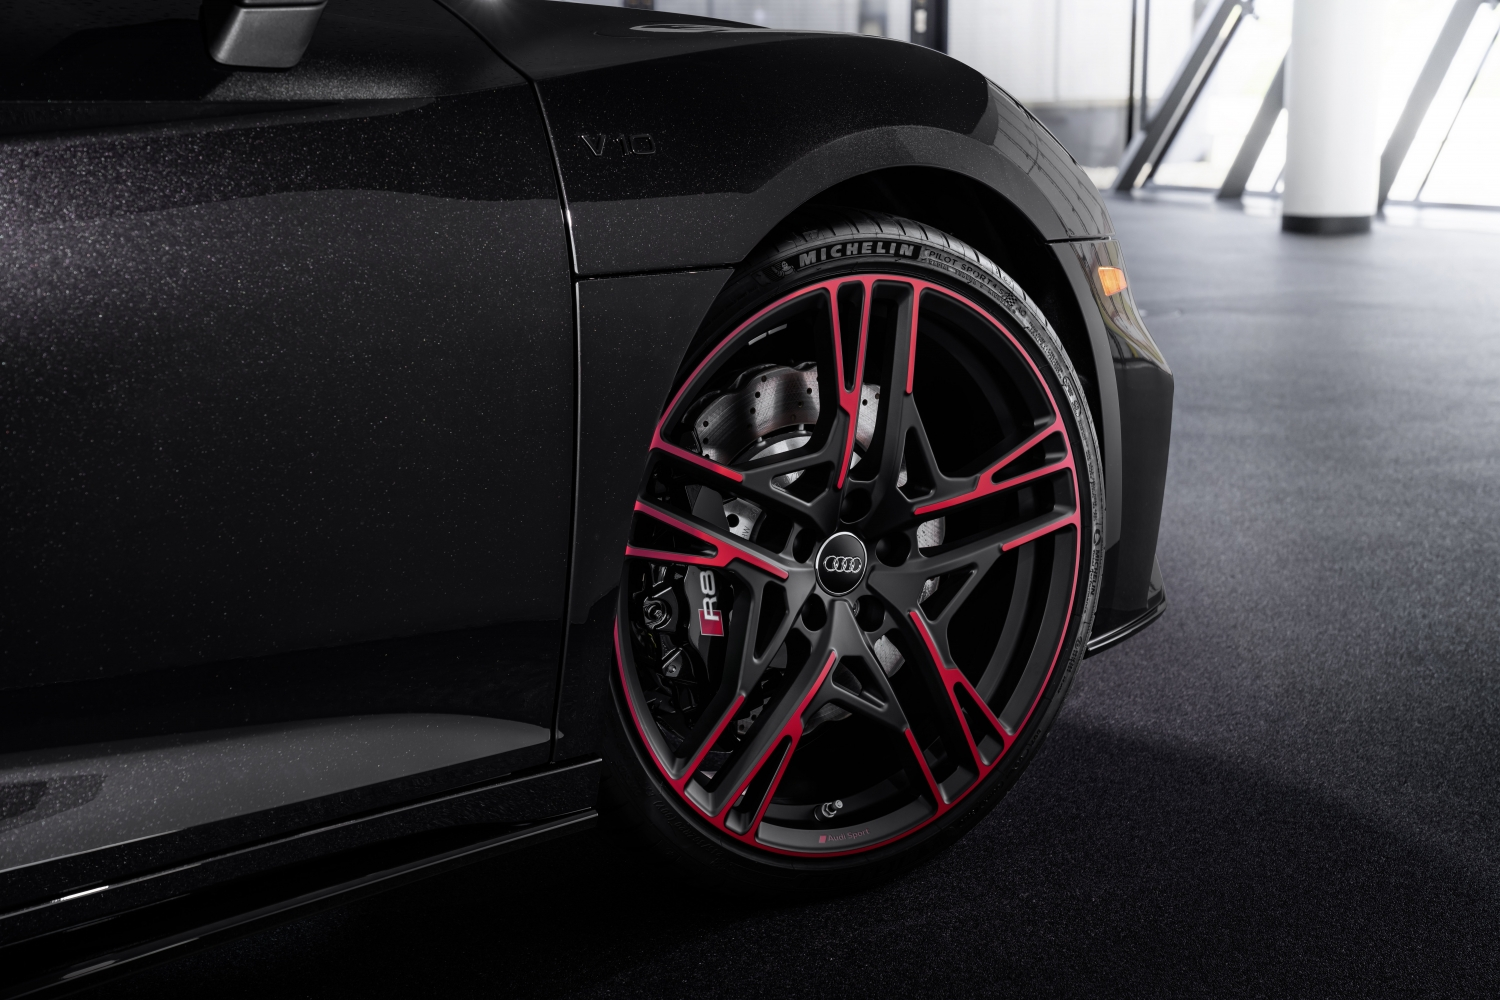 2021 Audi R8 Panther Edition wheel